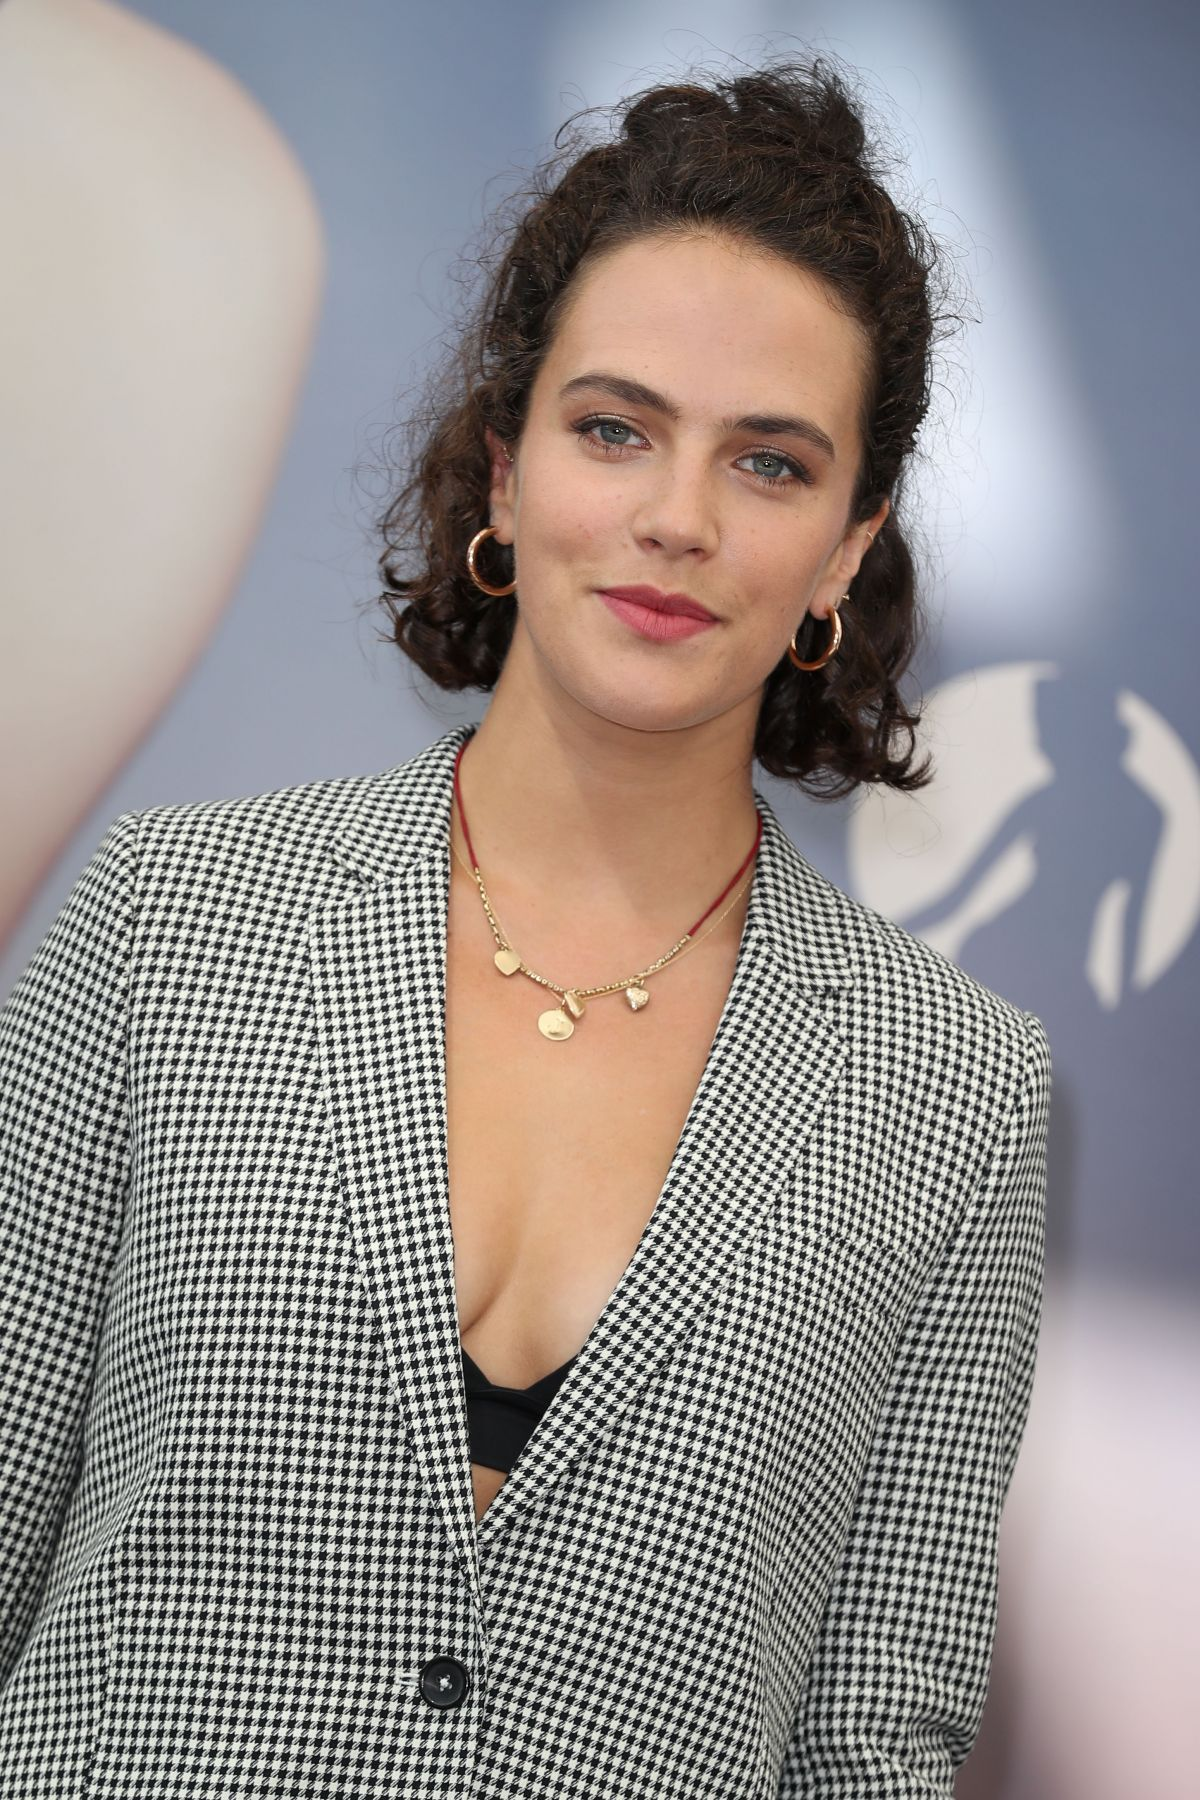 Jessica brown findlay 58th monte carlo television festival closing ceremony 6 nudes (91 photos)